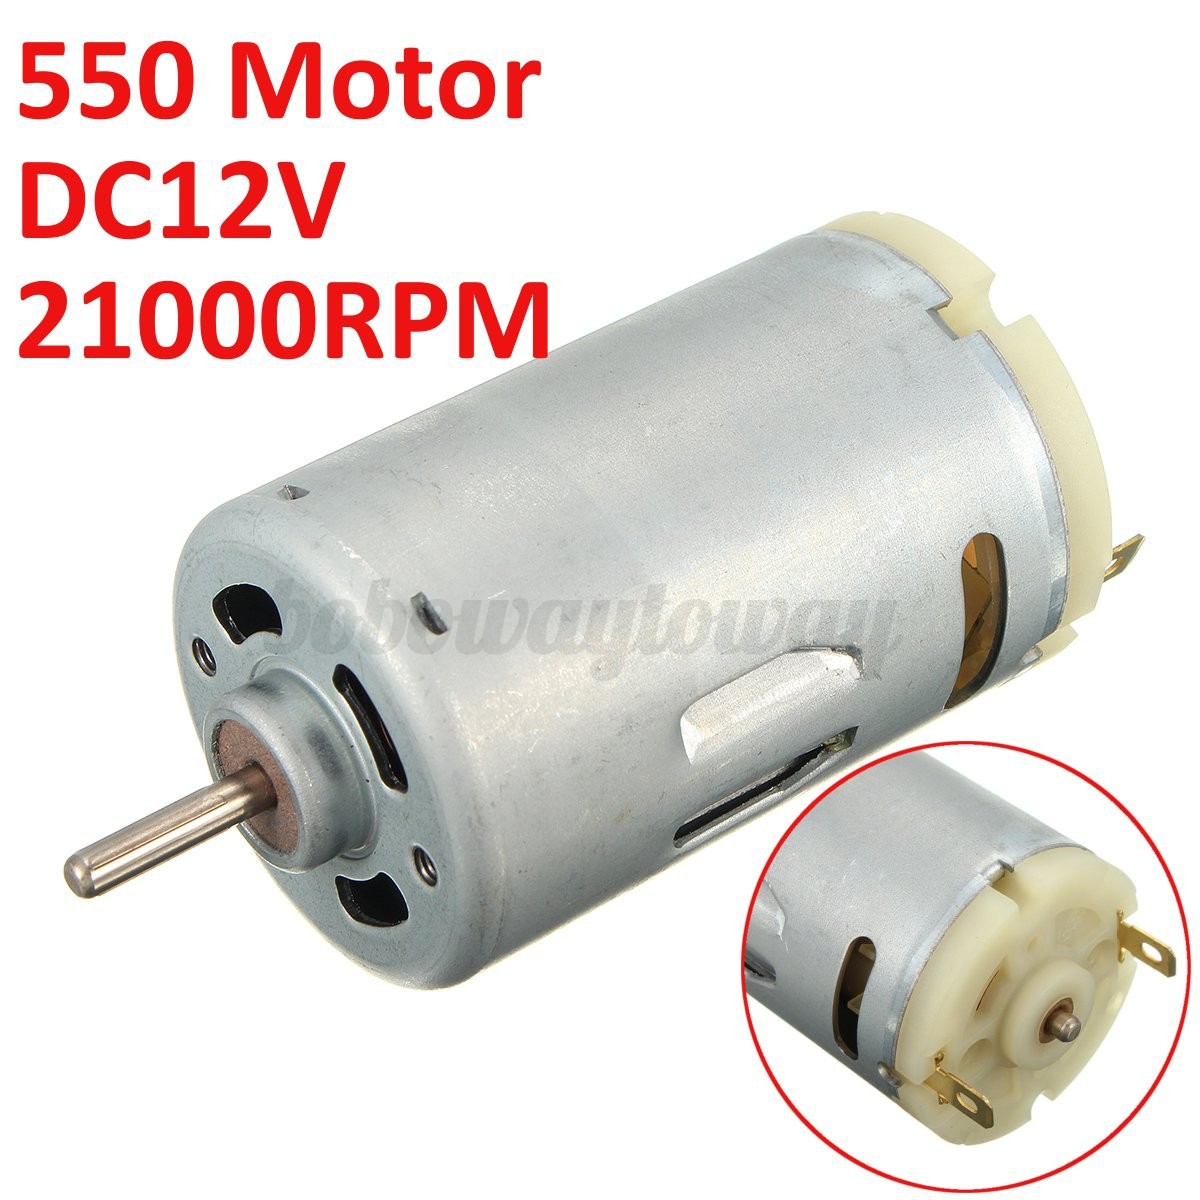 Dc 12v 550 Motor 21000rpm High Rotating Speed Motor Large